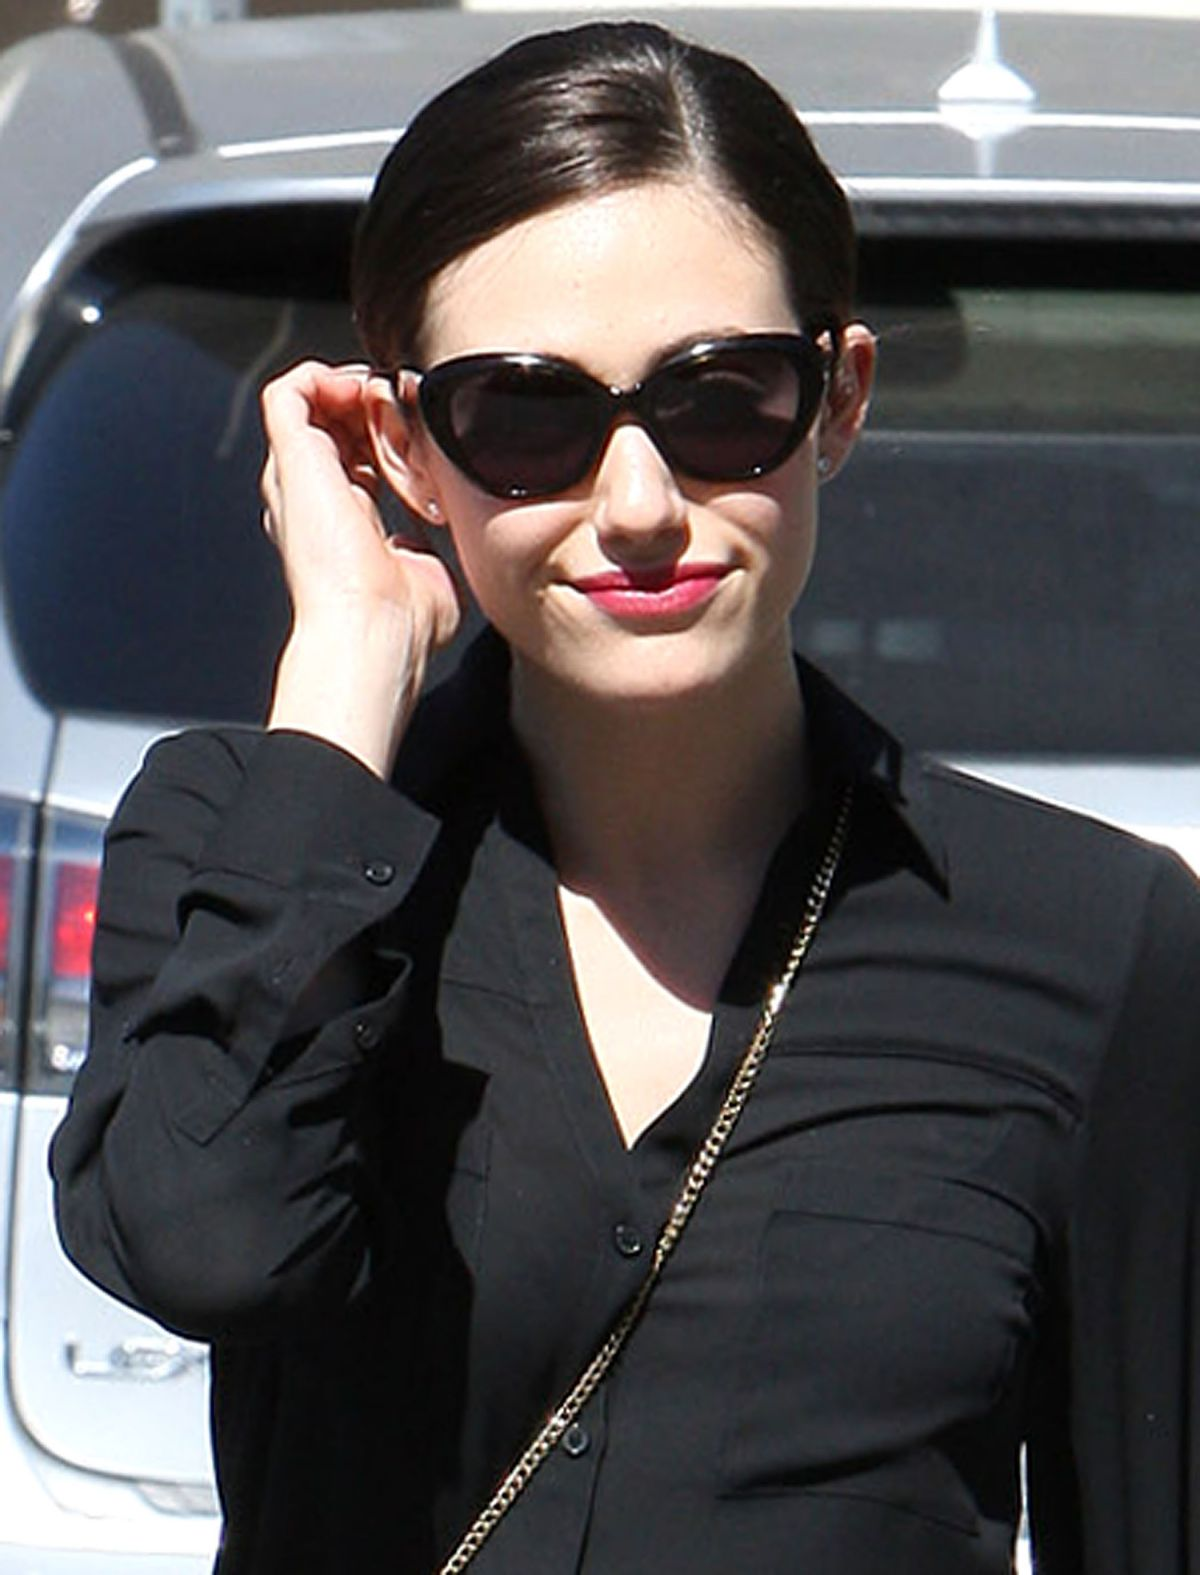 Emmy Rossum In All Black, Los Angeles